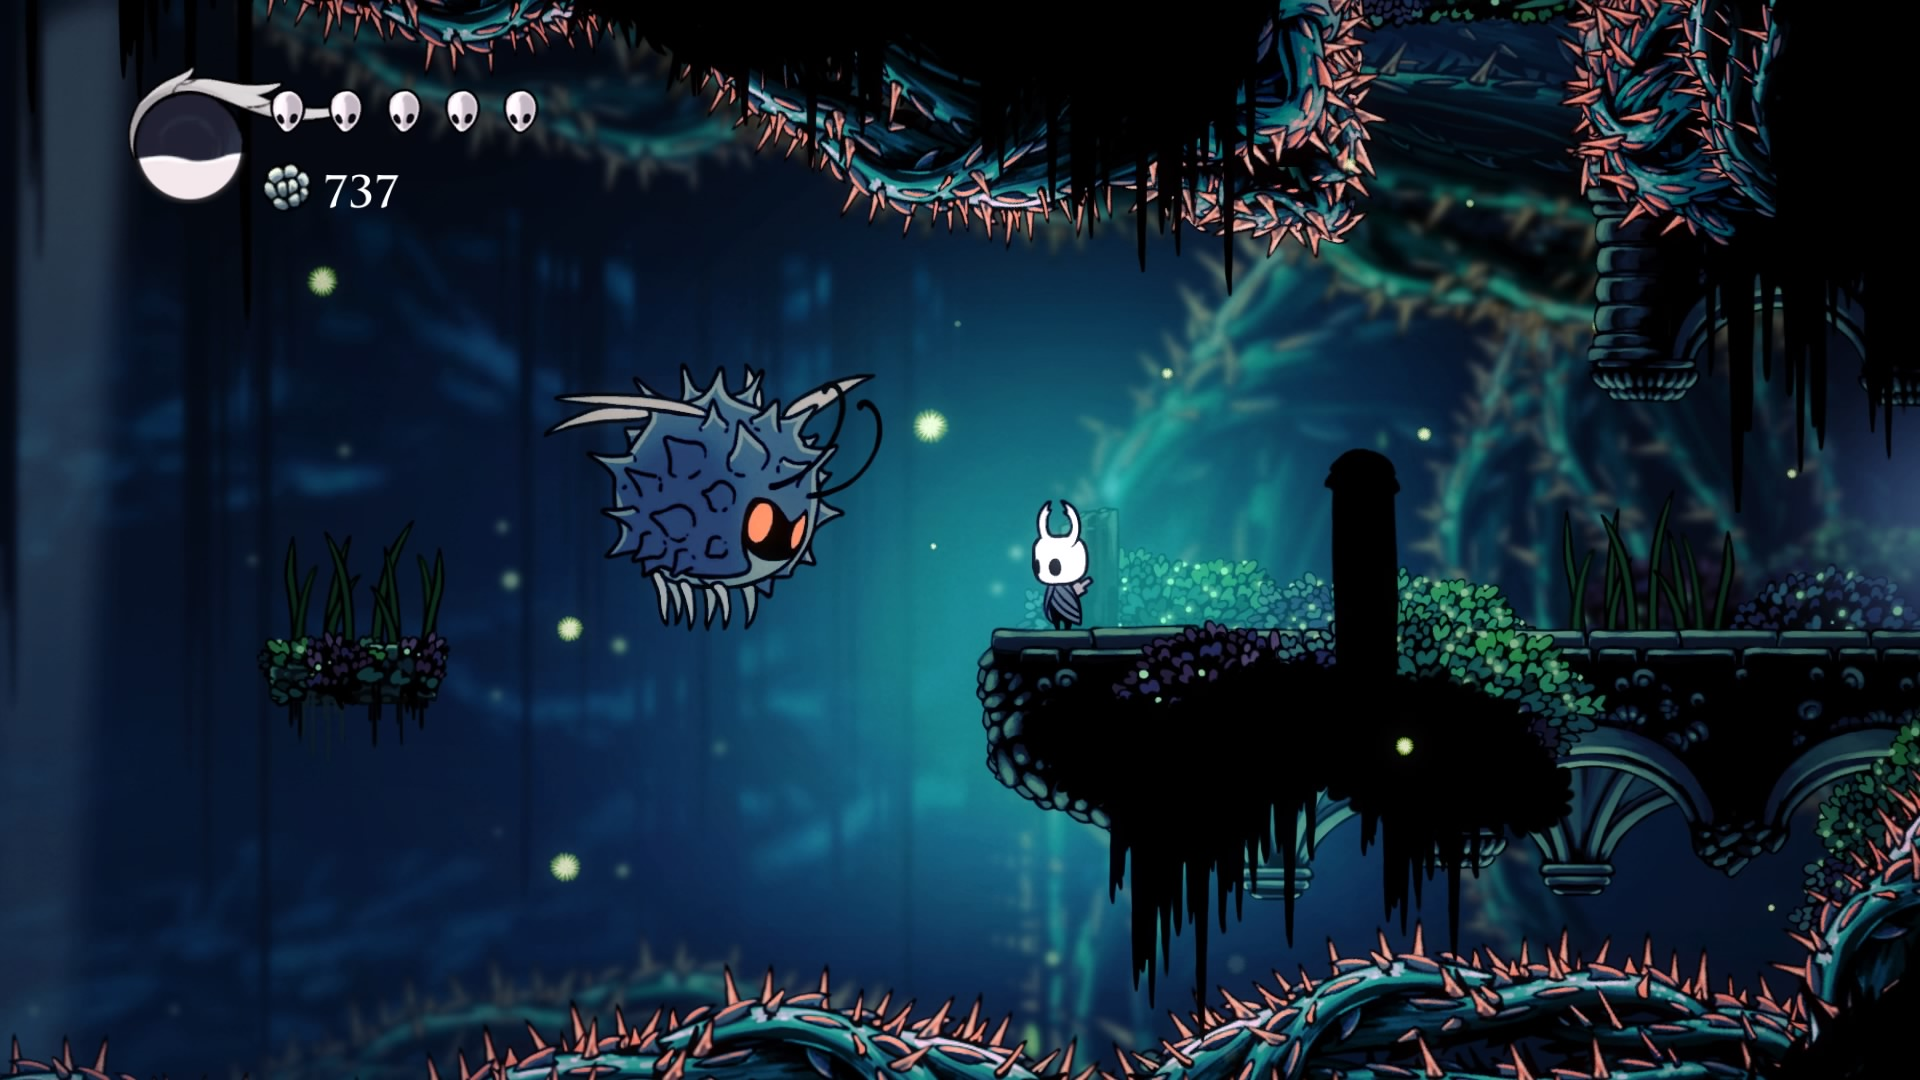 Hollow Knight 20191009153829 - Hollow Knight, guida e lore: Verdevia II